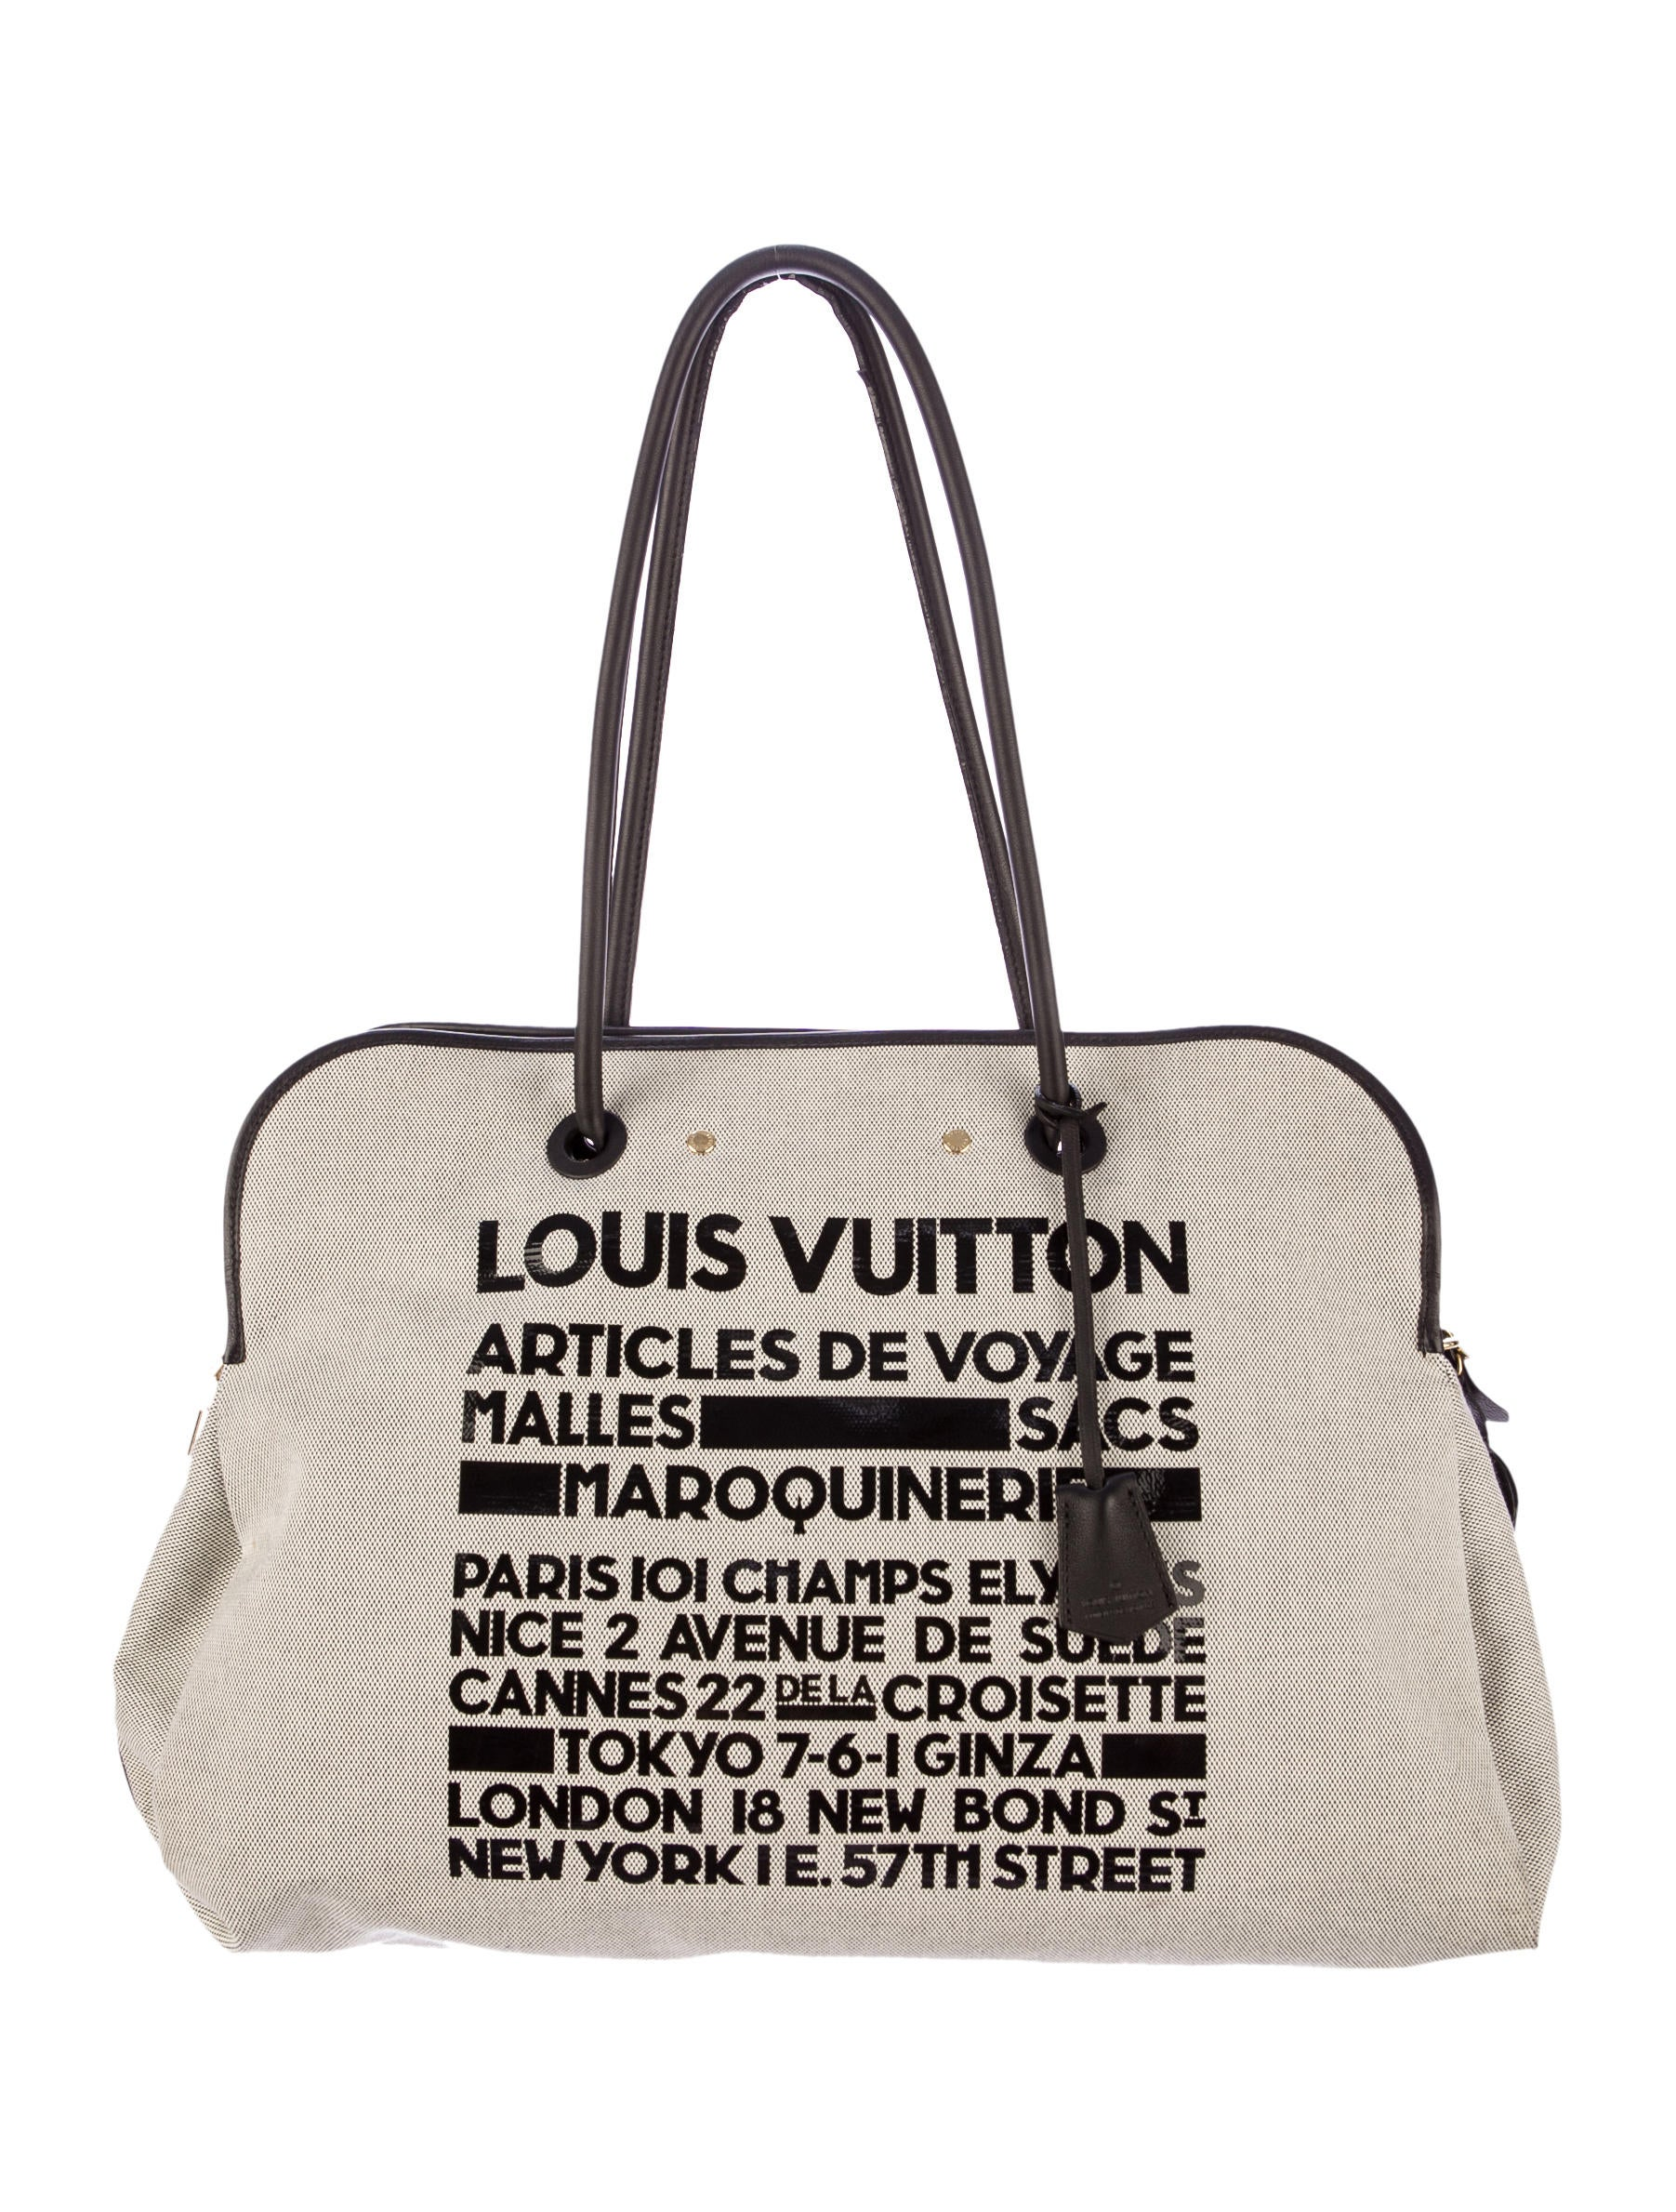 d47b76cdc86c Louis Vuitton Articles De Voyage Malles Traveller - Accessories ...